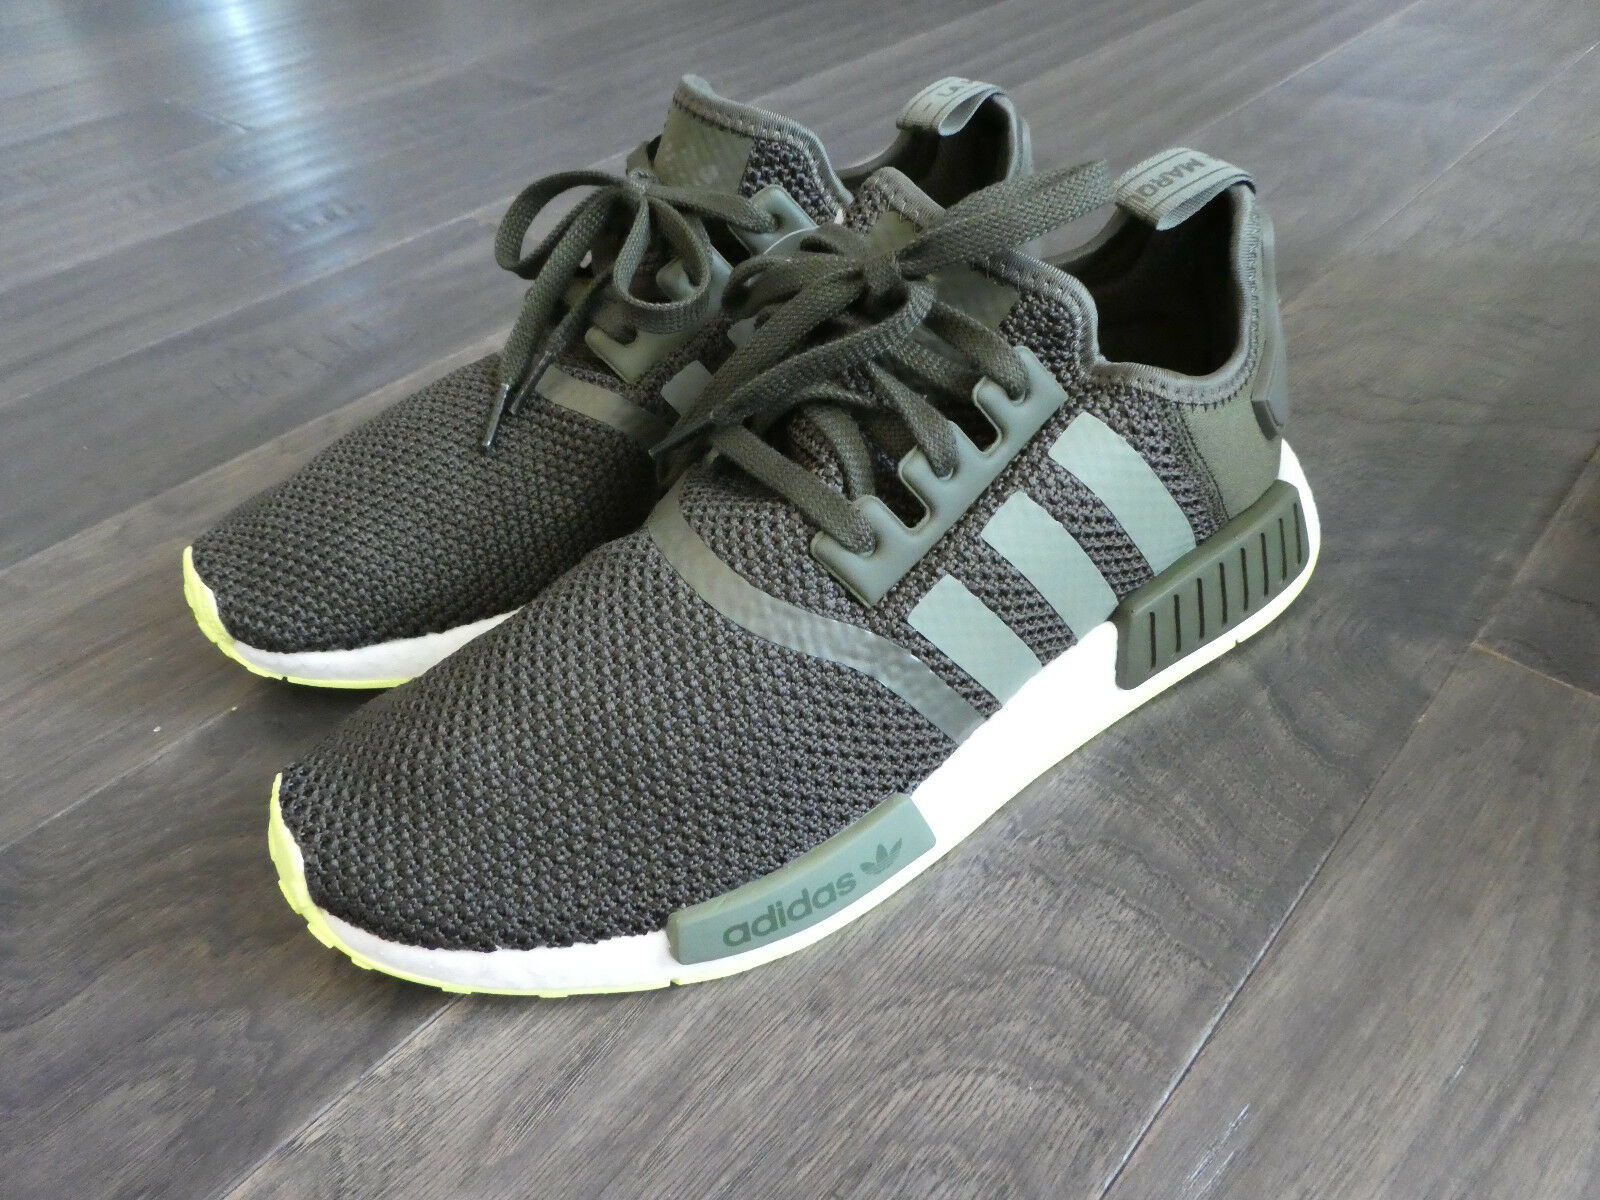 Adidas NMD_R1 Boost shoes sneakers new CQ2414 Cargo Green Lime